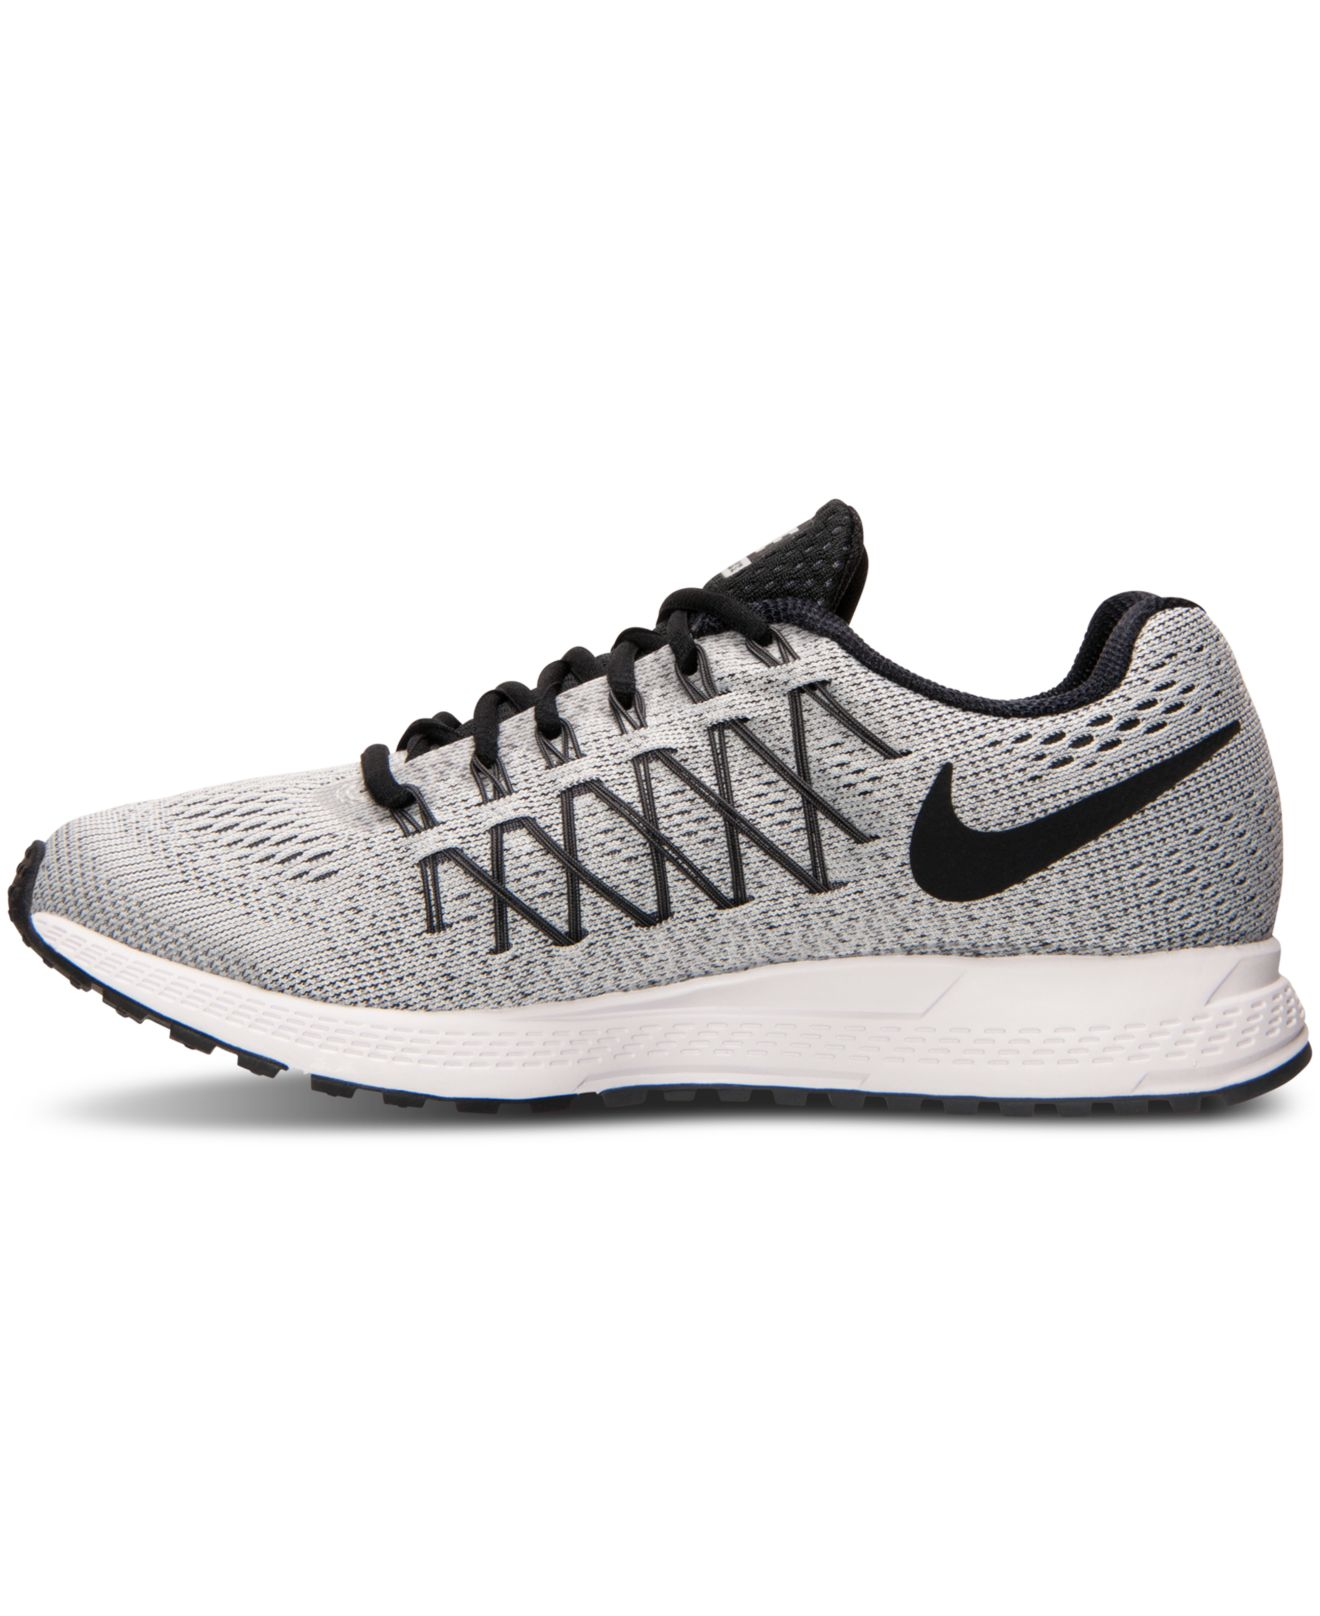 nike women 39 s zoom pegasus 32 running sneakers from finish. Black Bedroom Furniture Sets. Home Design Ideas